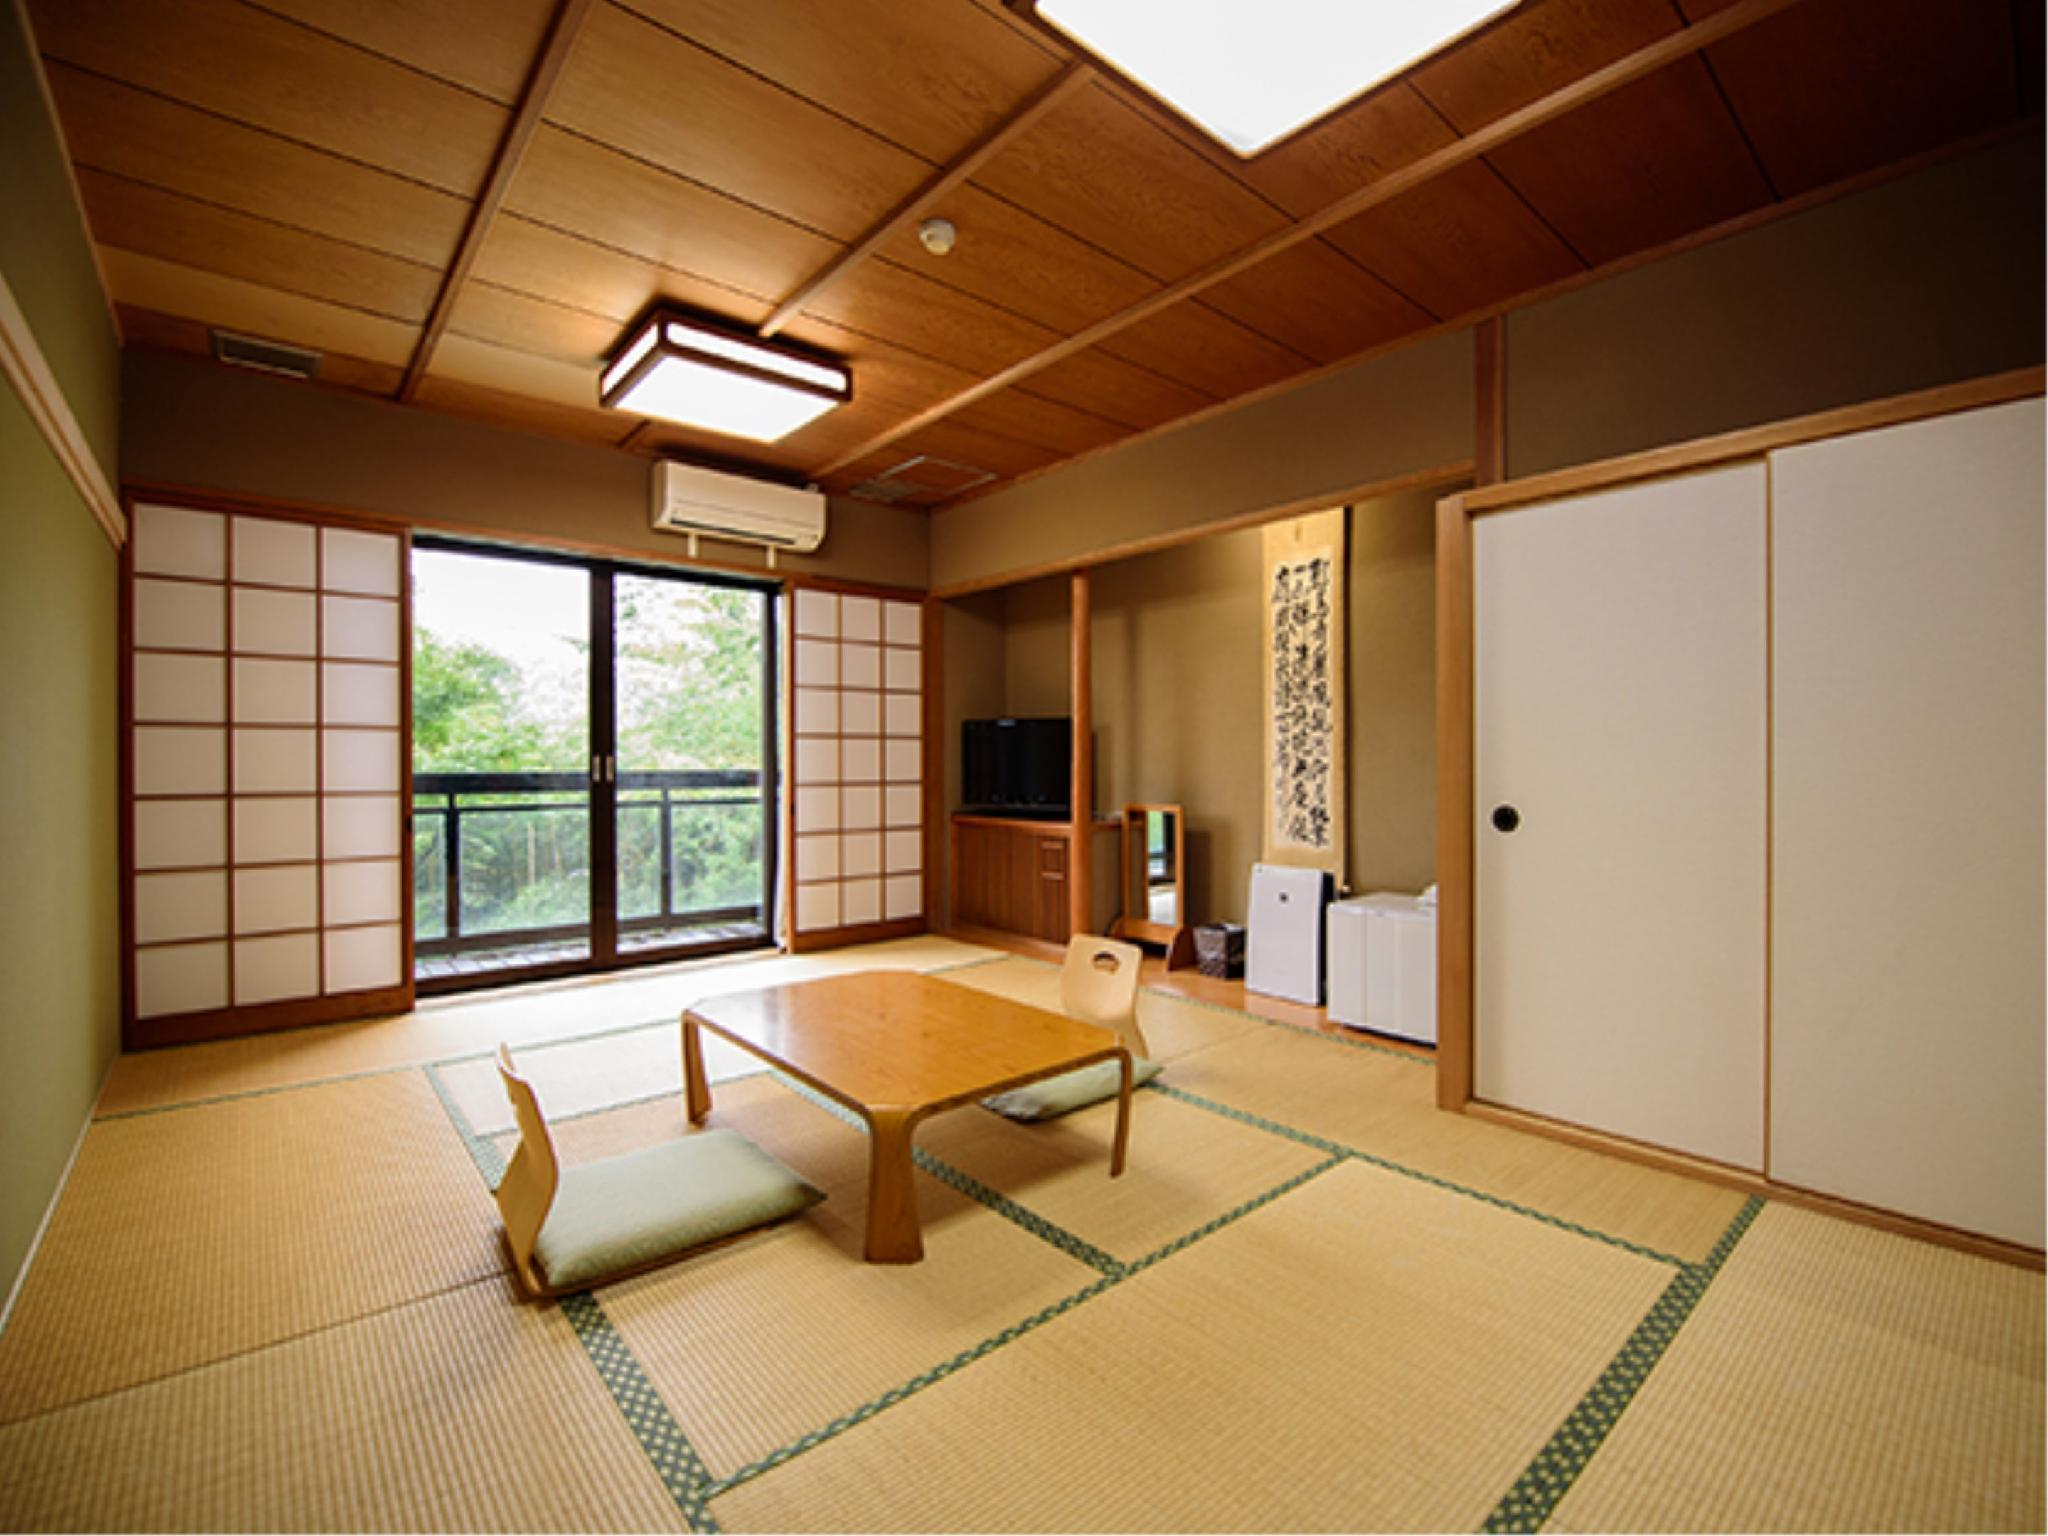 和式房(客房内无浴室、淋浴间) (Japanese-style Room *No bath or shower in room)